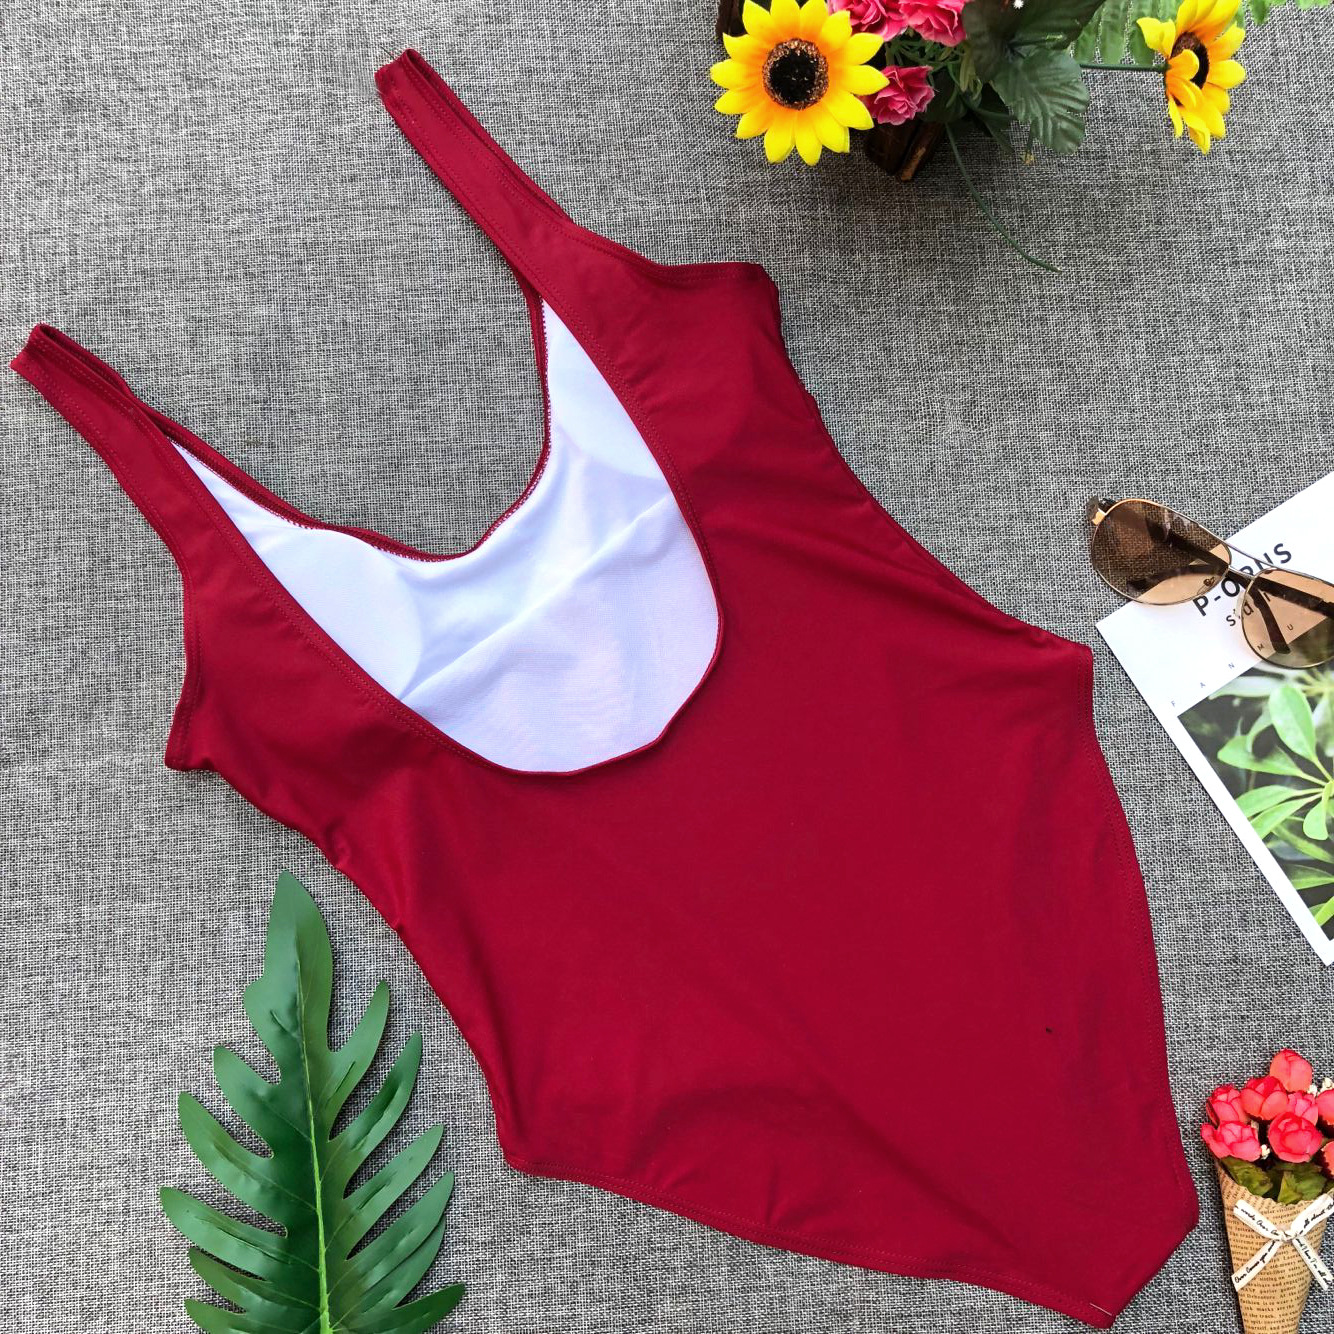 2019 Sports Letter Printed Swimmwear Monokini Swimsuit Sexy One Piece Swim Suits Women Bathing Suit in Body Suits from Sports Entertainment